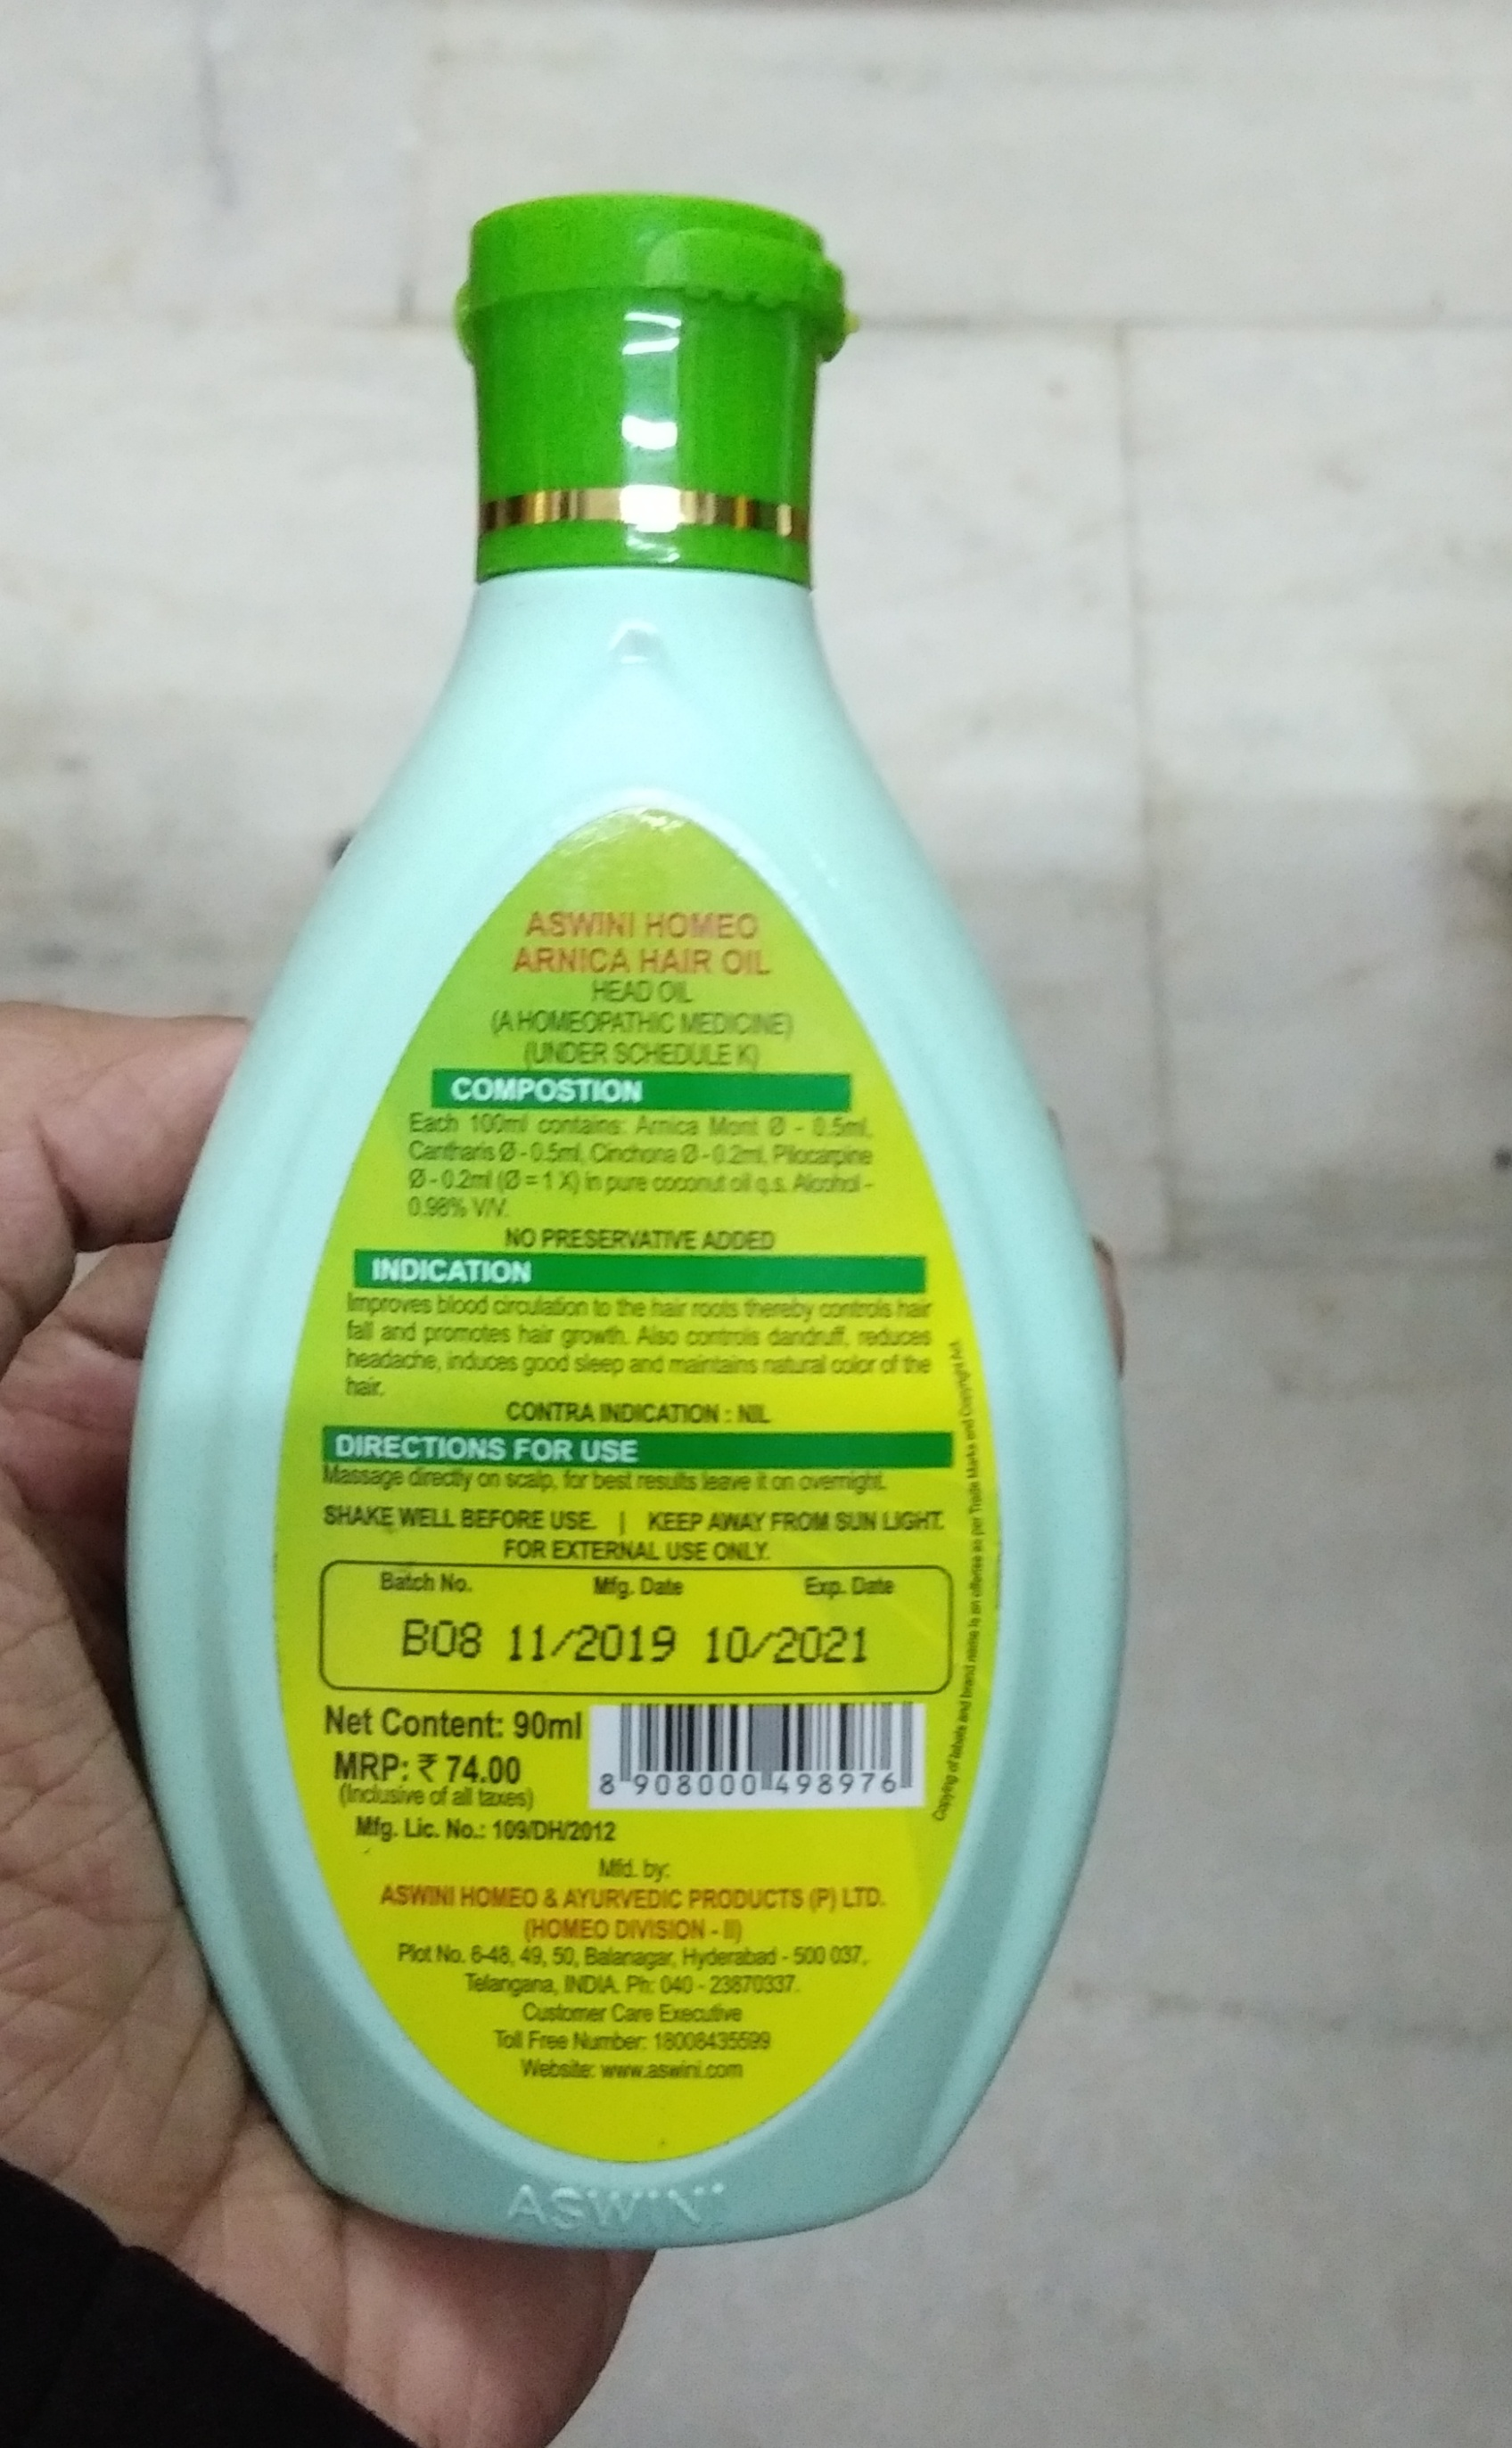 Aswini Homeo Arnica Hair Oil pic 1-Ordinary product-By Nasreen